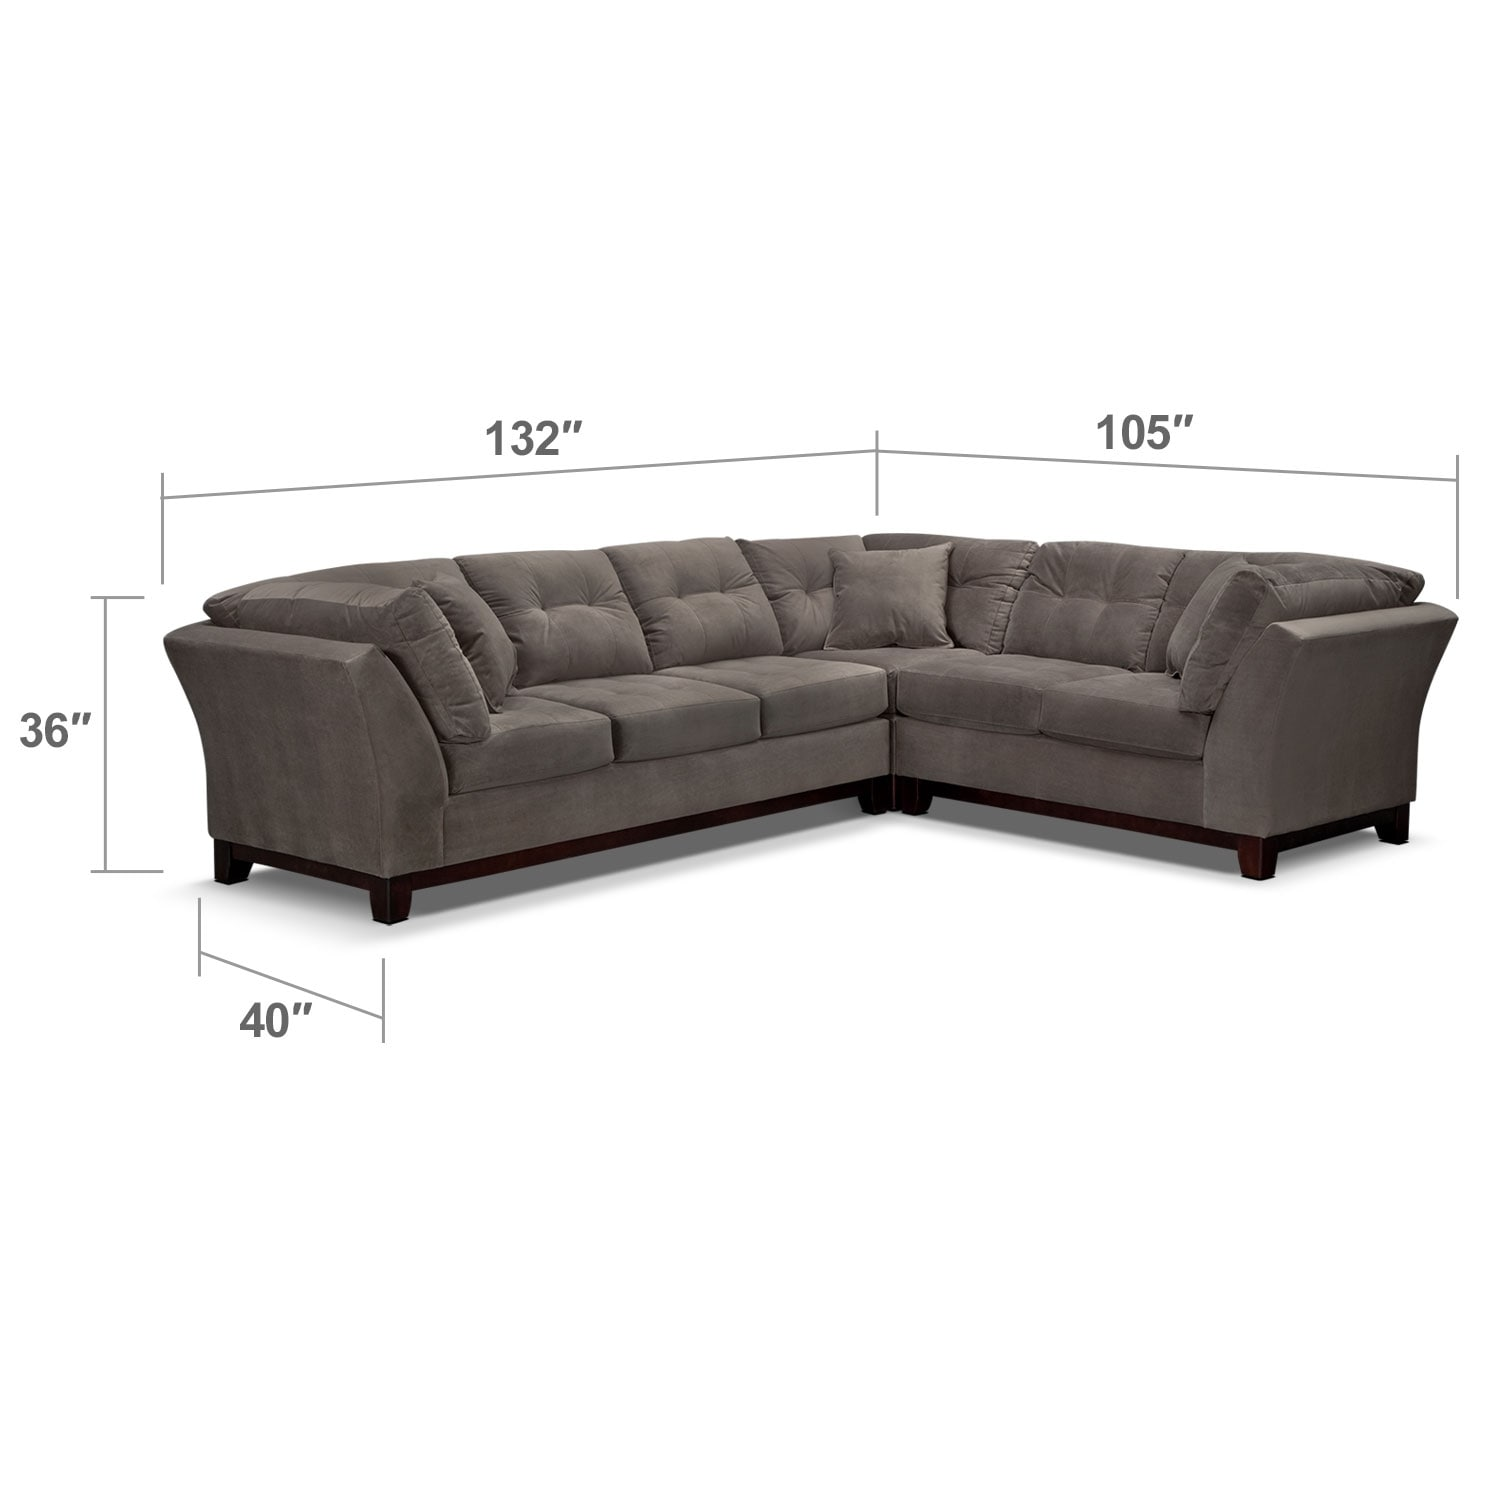 Living Room Furniture - Solace 3-Piece Left-Facing Sofa Sectional - Gray